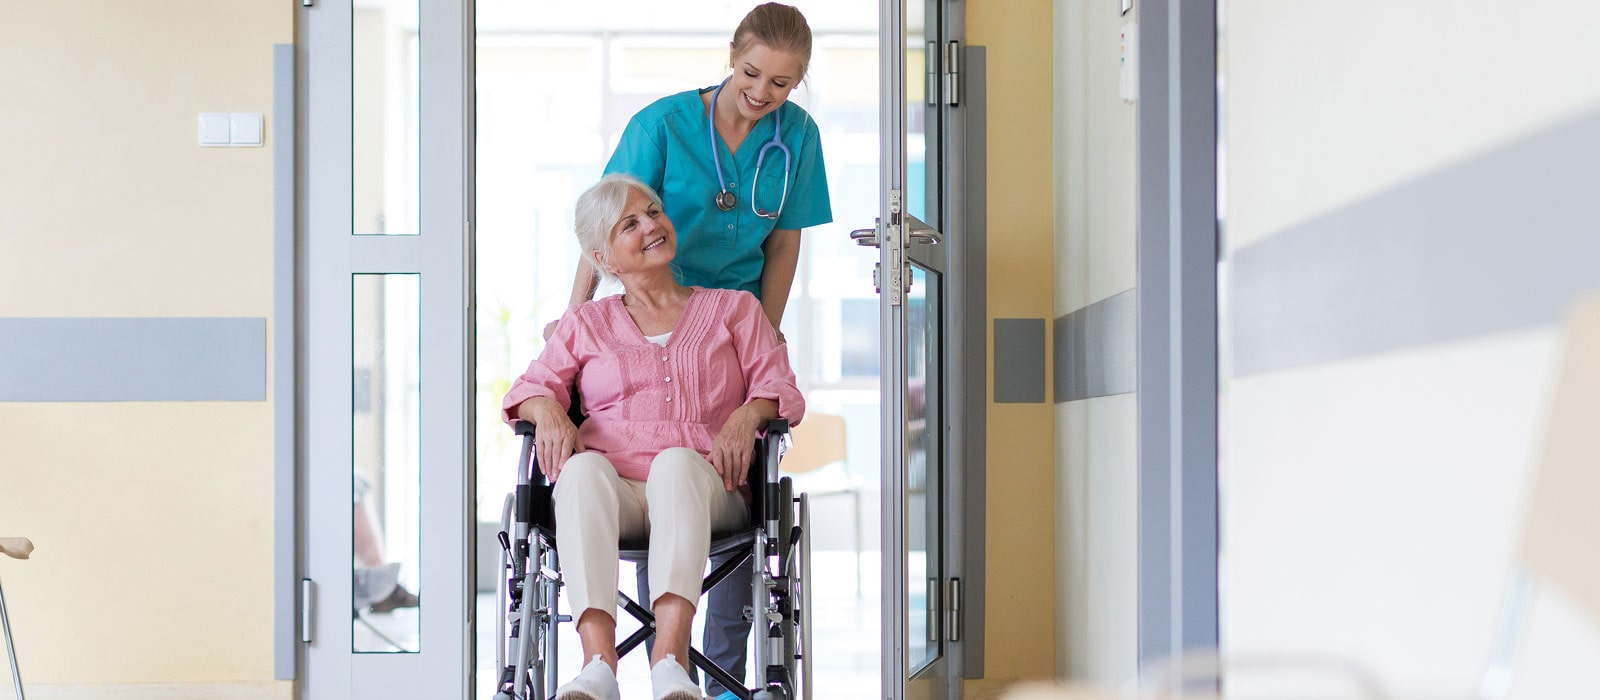 Signs a Patient is Ready for Hospice Care